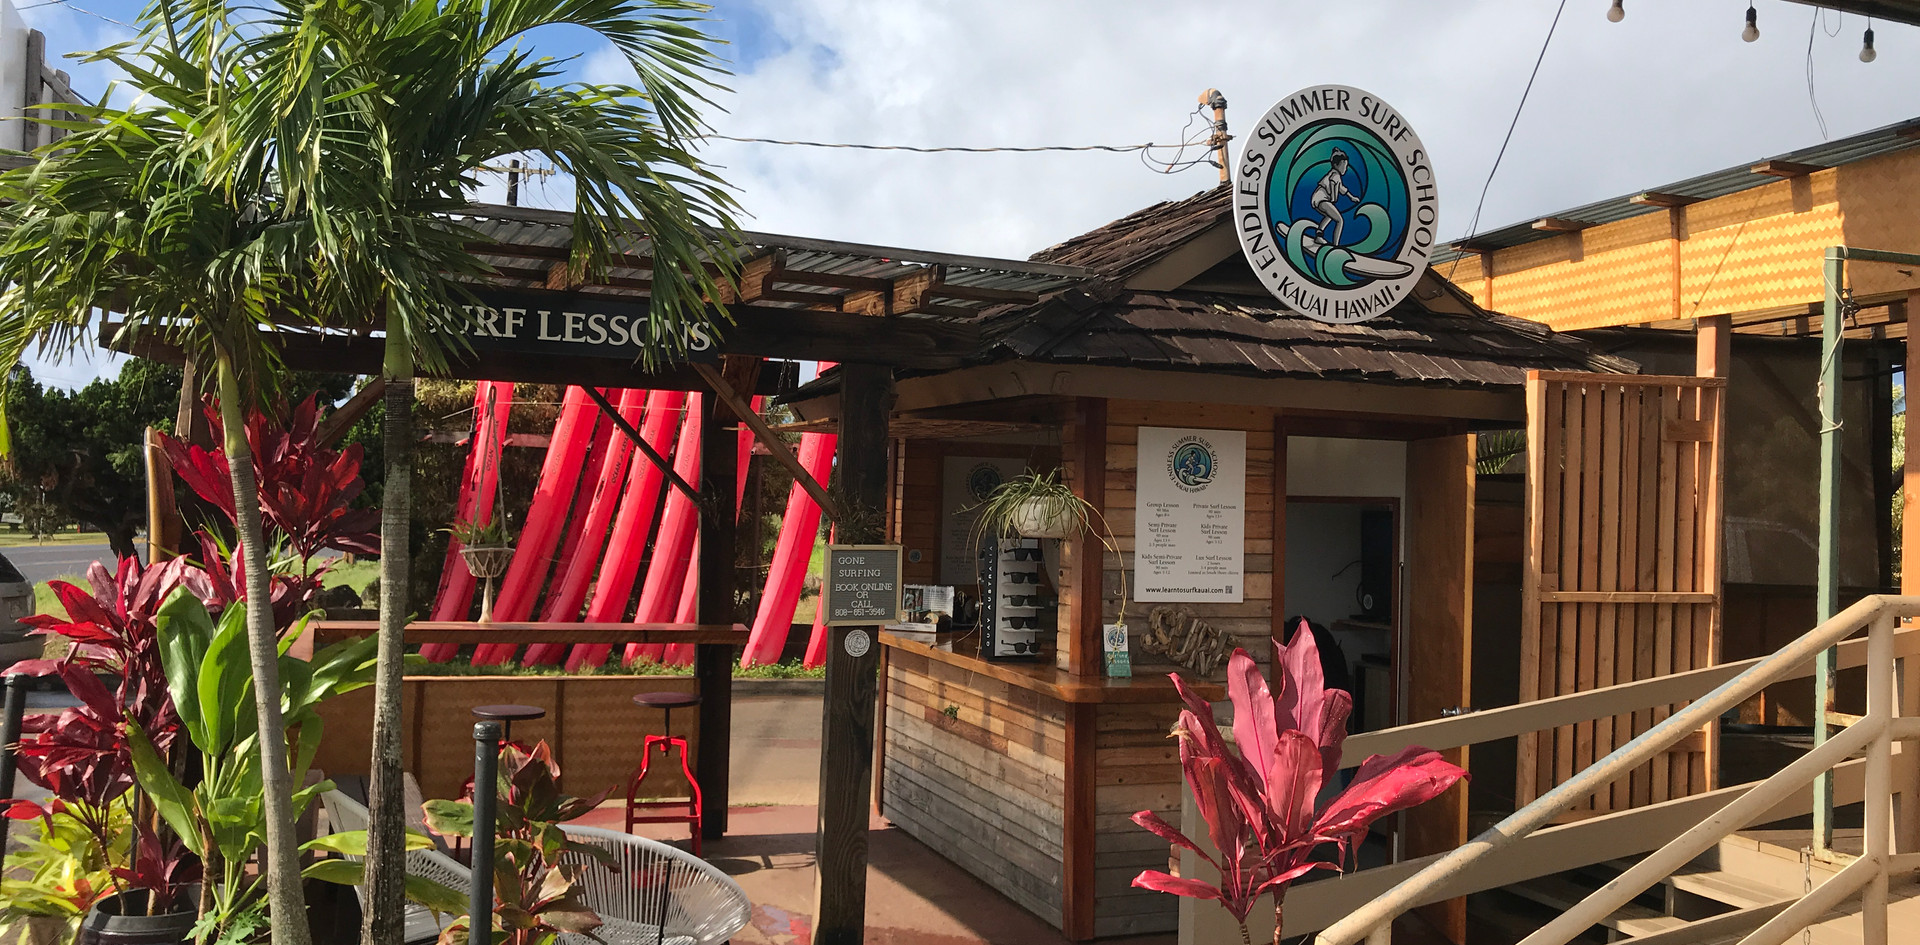 Kauai surf school